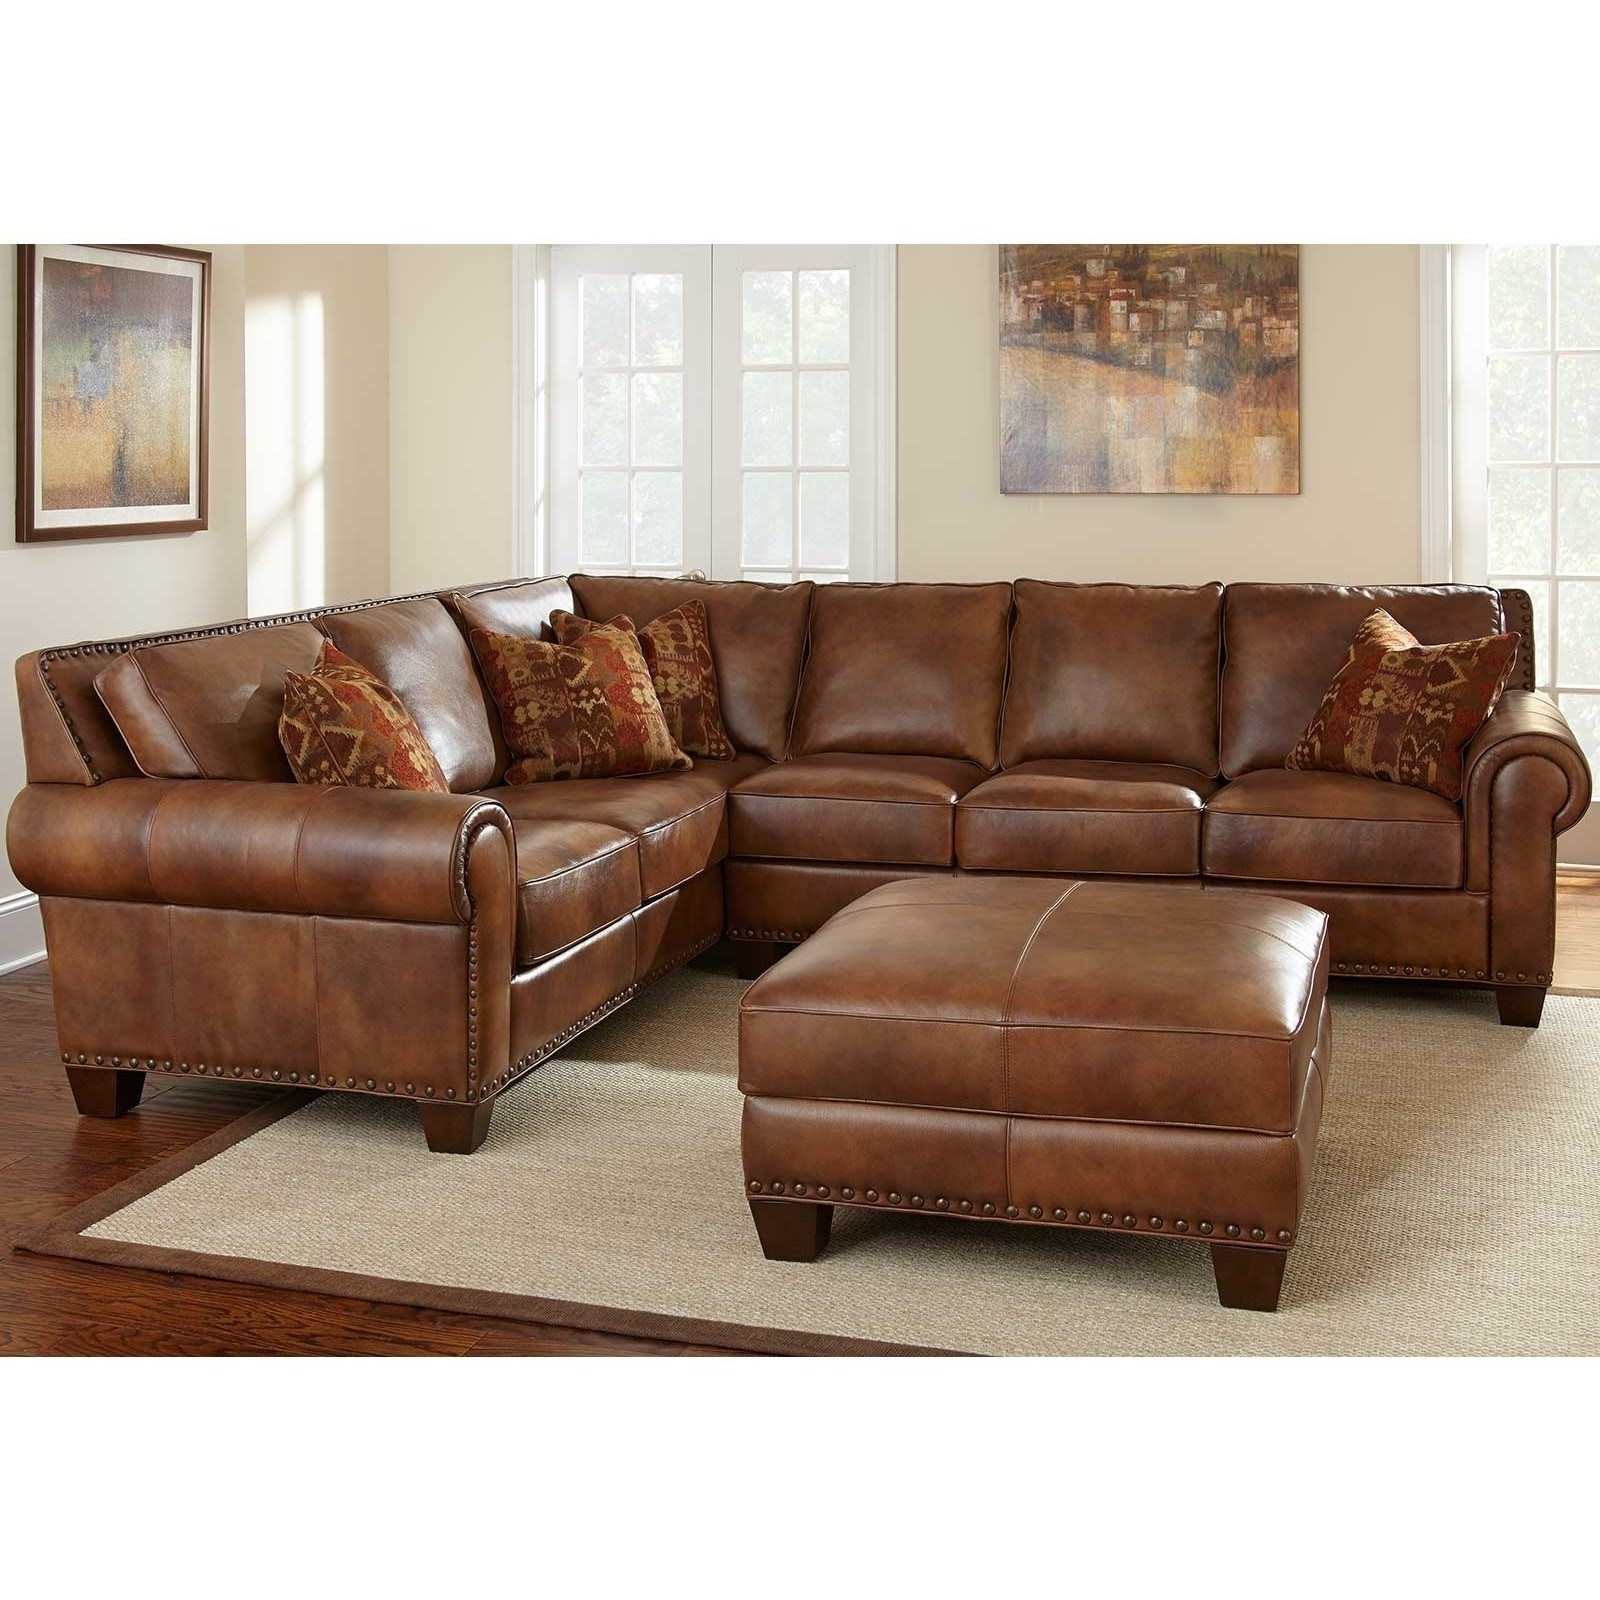 Famous White Leather Sectional Sofa Macy's • Leather Sofa With Macys Leather Sofas (View 4 of 20)